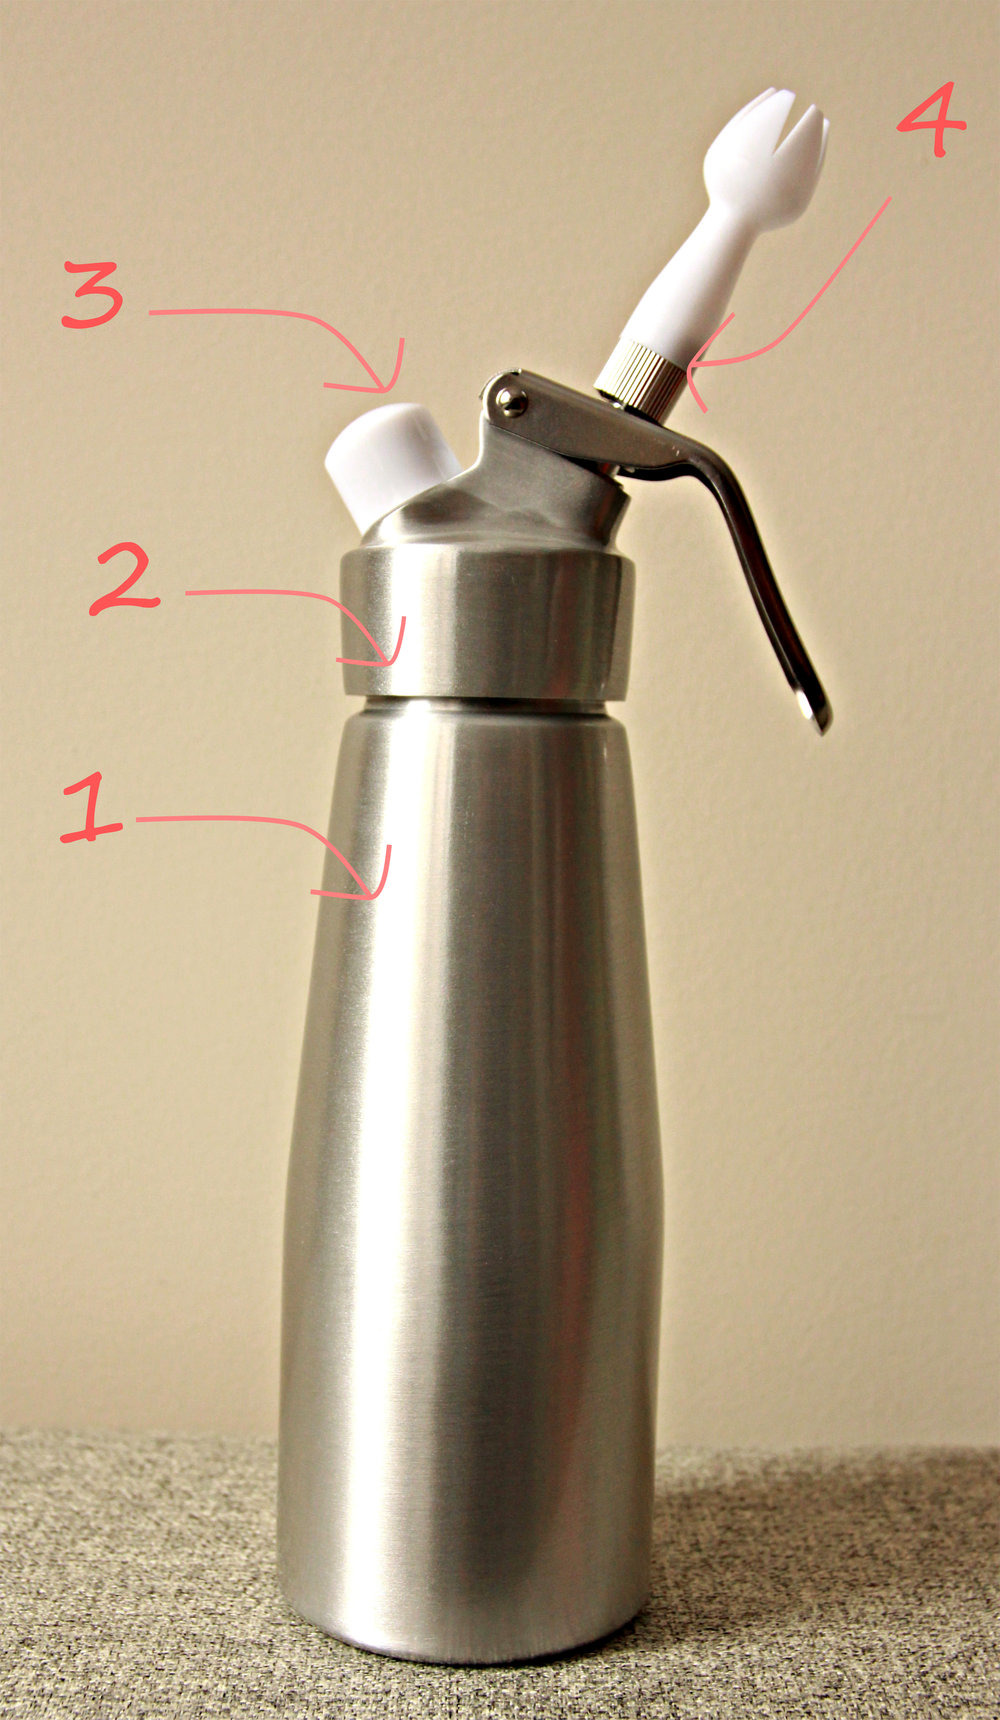 A whipping siphon